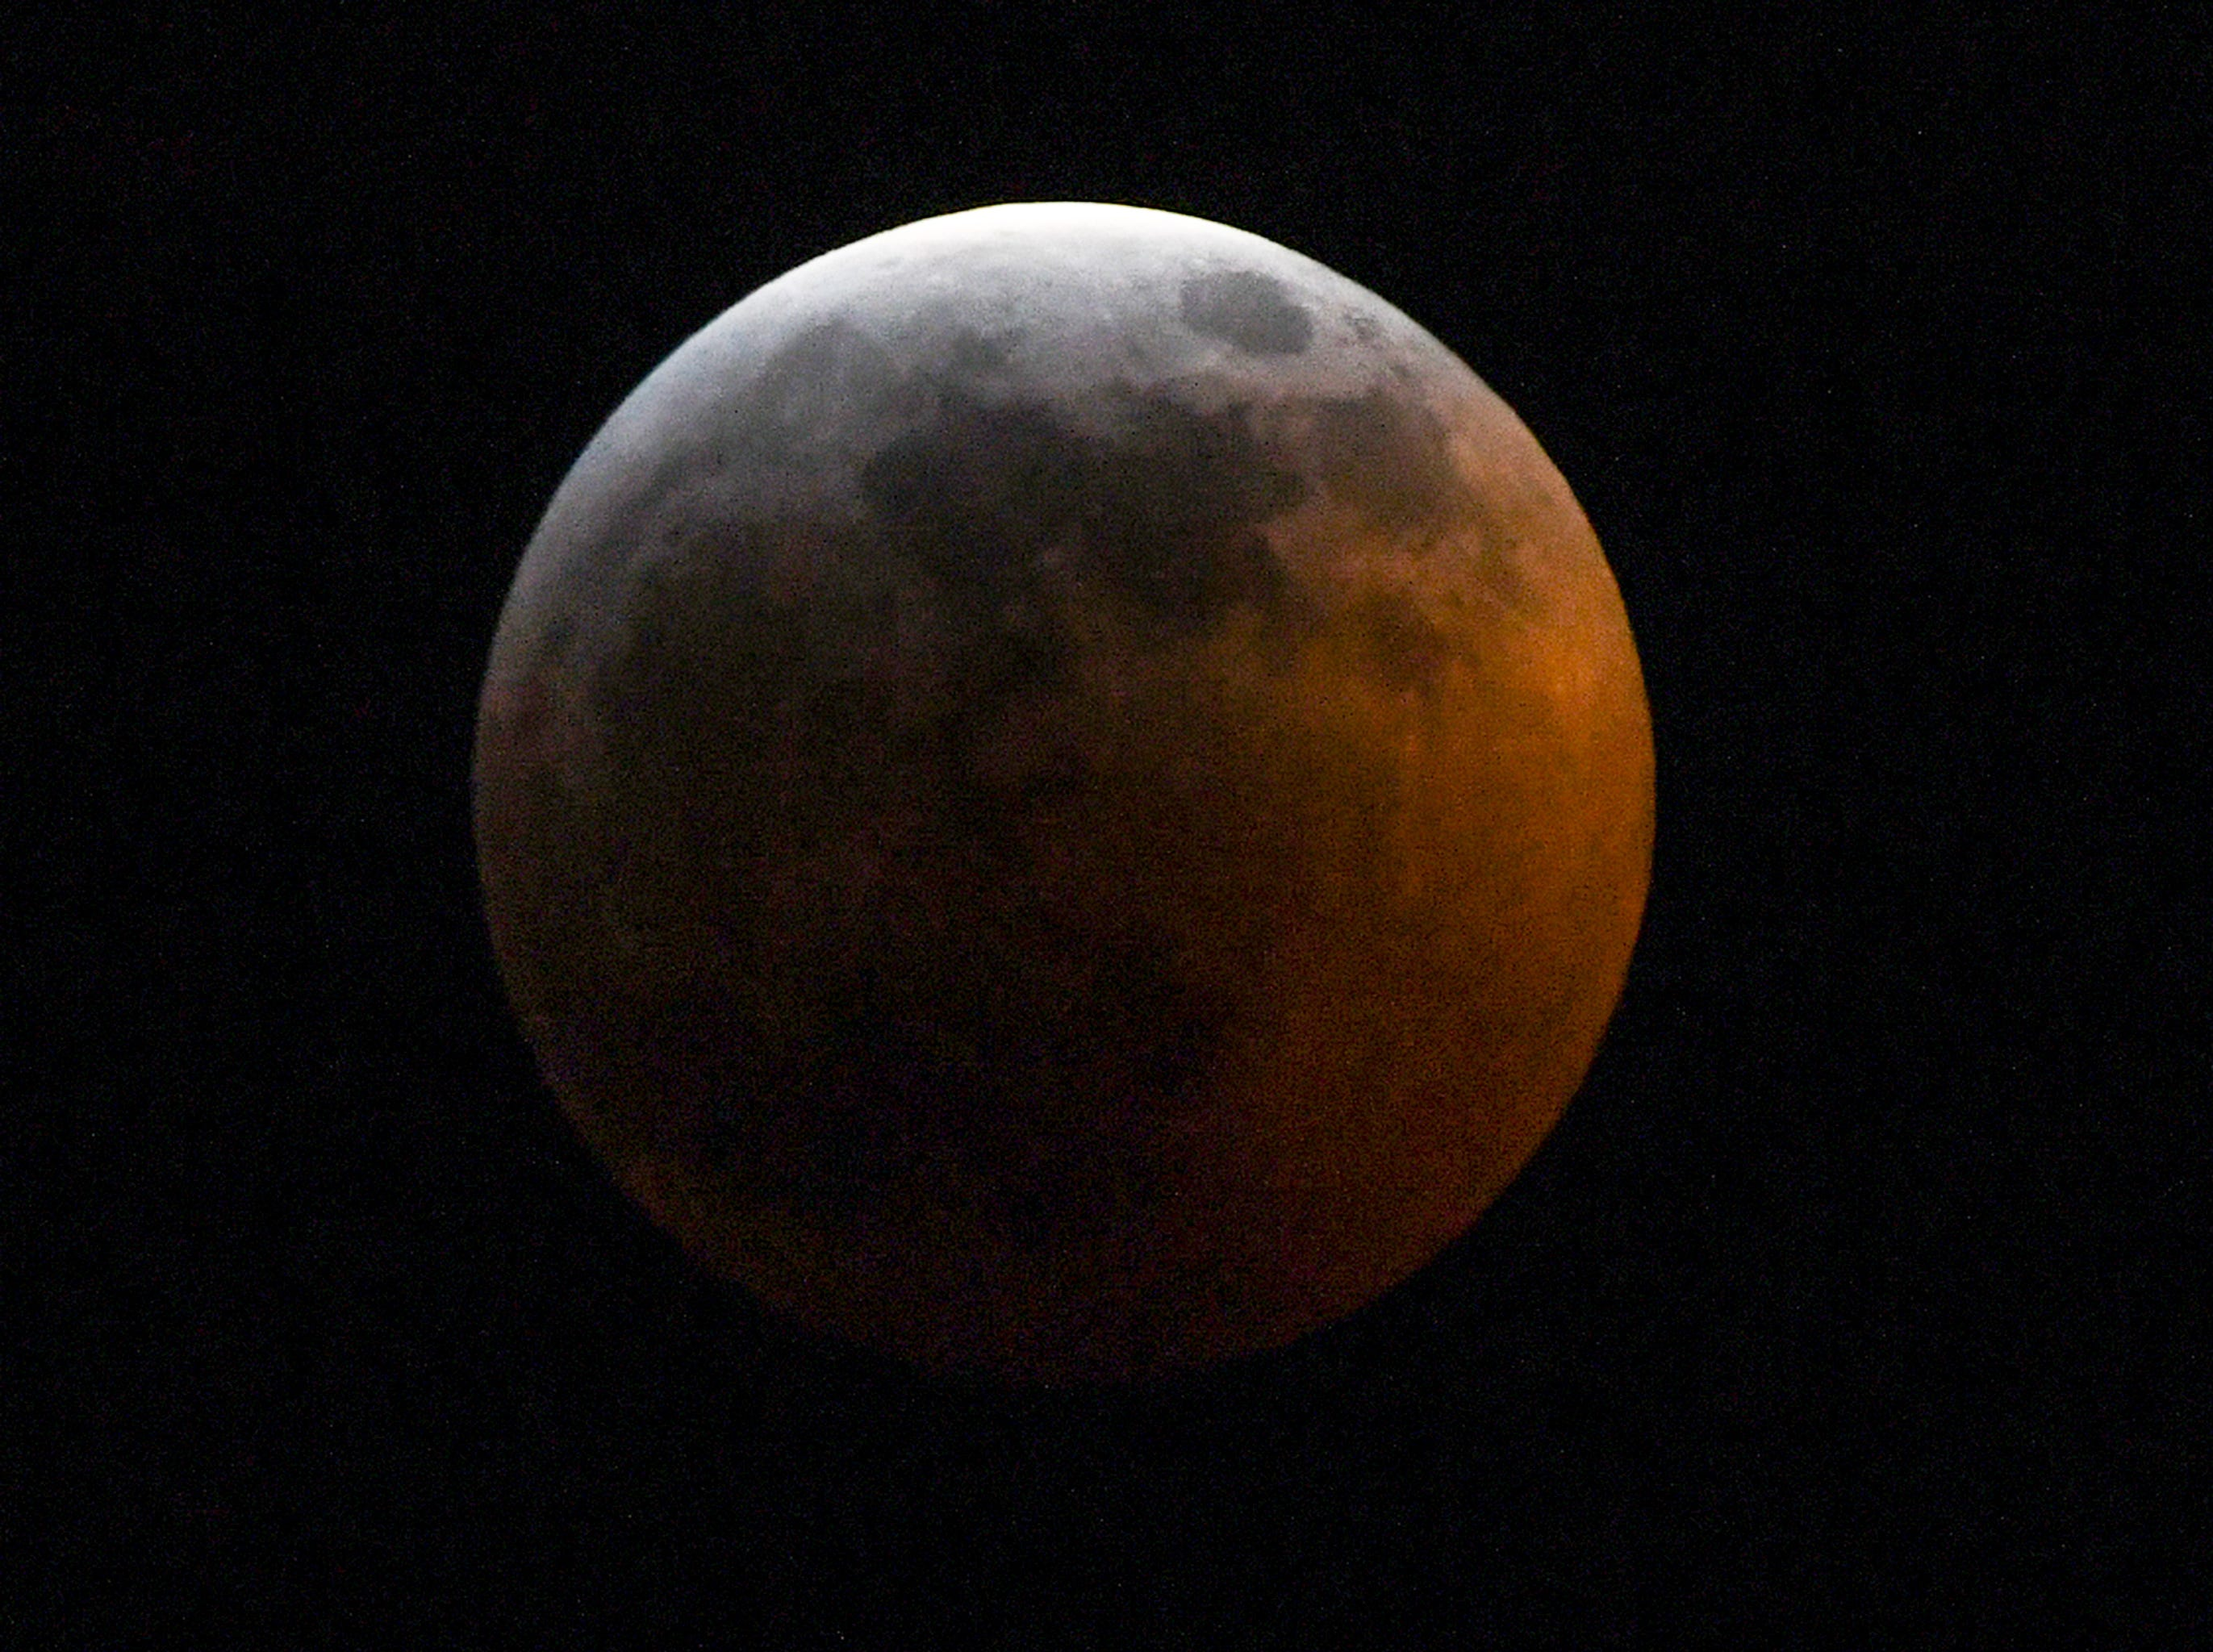 The Super blood wolf moon total lunar eclipse, at 11:38 p.m. (EST) January 20, 2019, when the moon began edging into Earth's shadow and minutes later became darkened at 11:41 p.m., seen from Anderson, S.C.